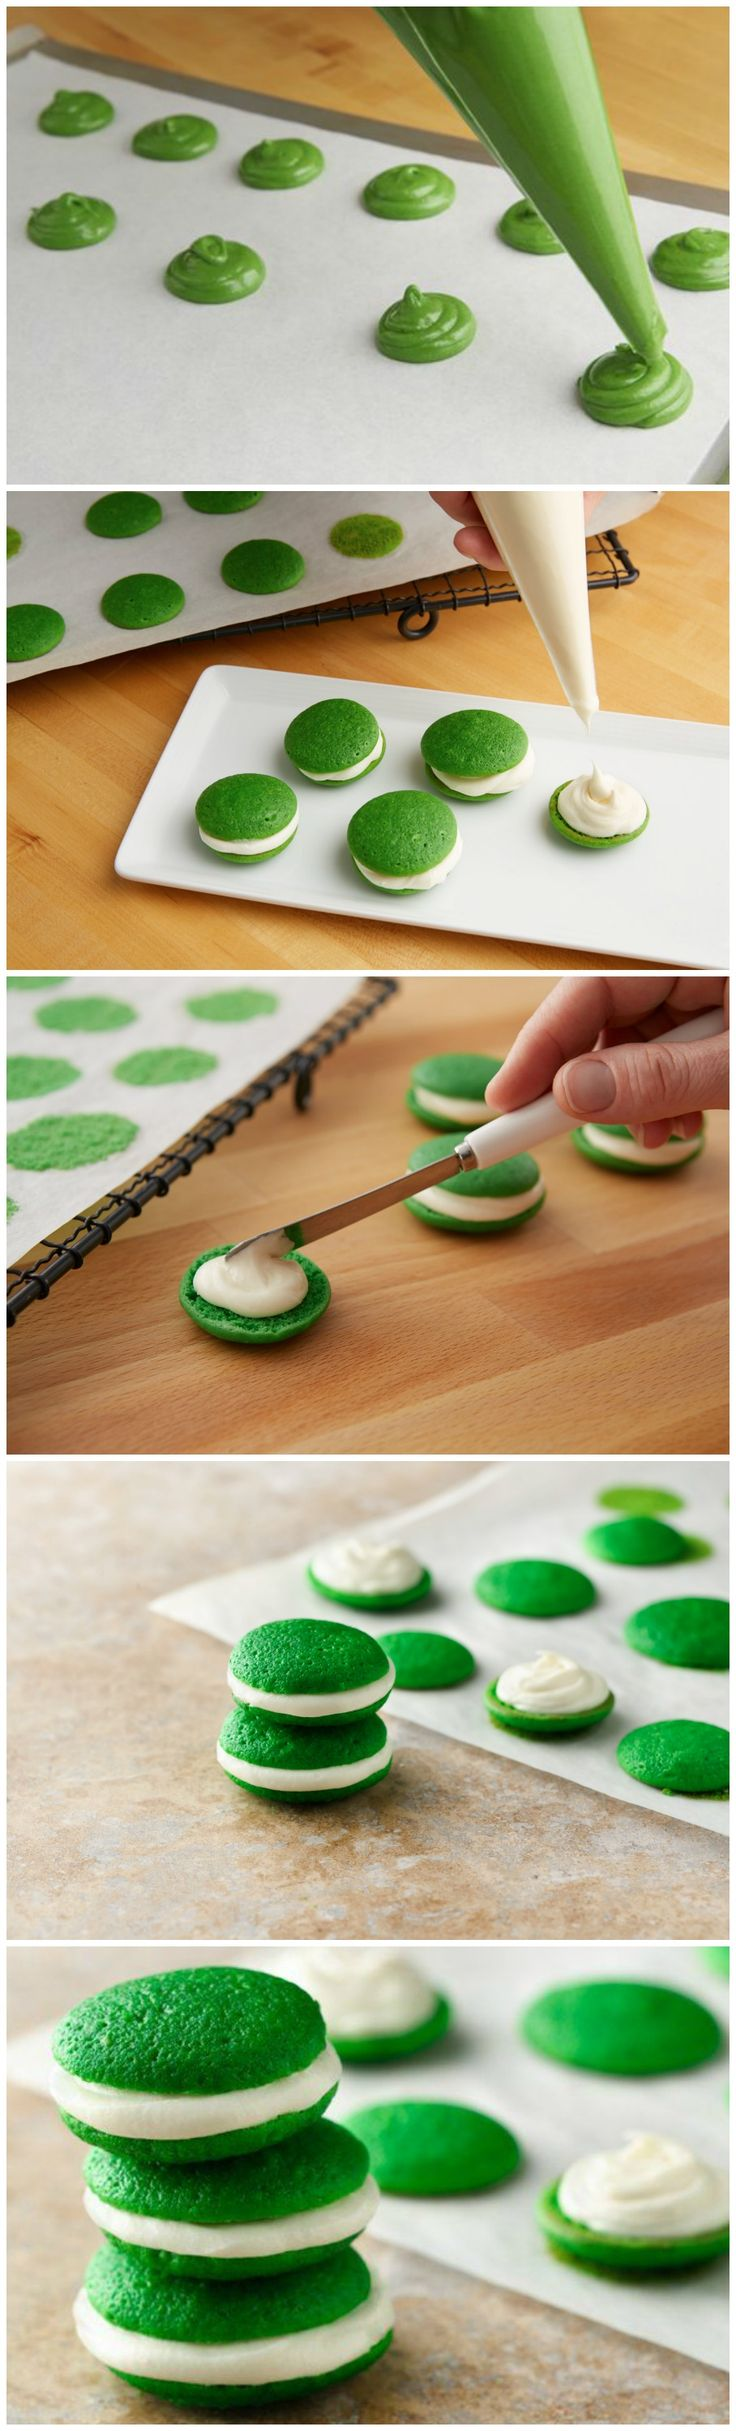 These look mysteriously easy to make...Mini Whoopie Pies!!!  So cute for St. Patrick's day!Pies Cookies, Pies Stpatricksday, Minis Dog Qu, Minis Whoopie Pies, St Patricks Day, Mysteries Easy, Cute Cookies Easy, Cake Recipes, Make Minis Whoopie